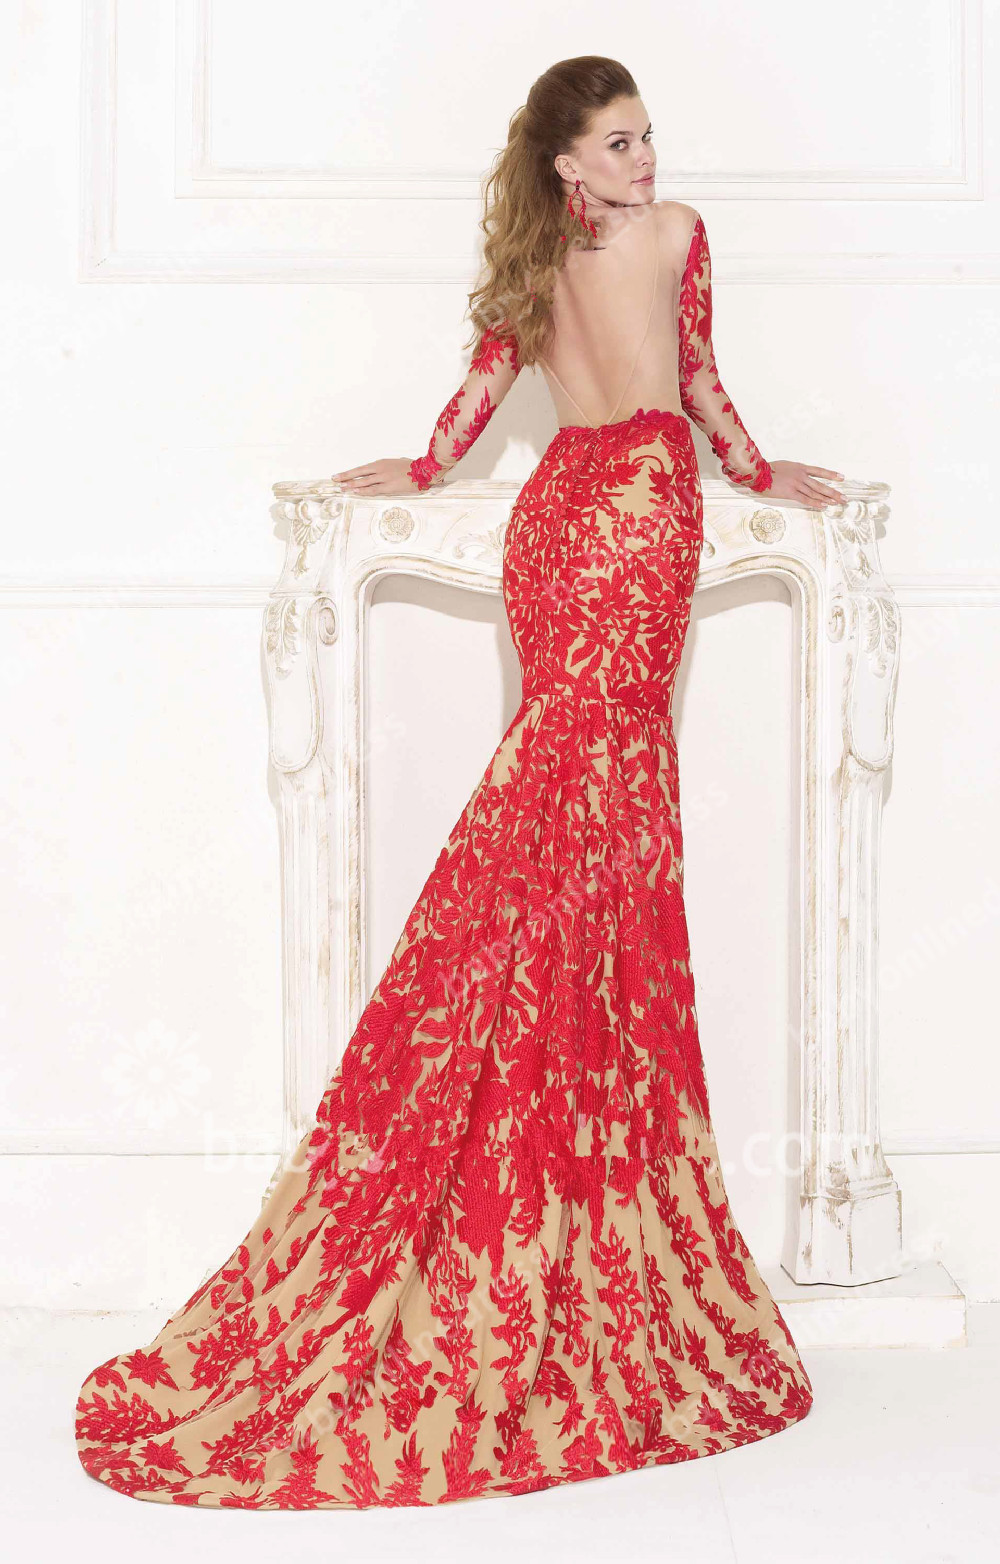 Red Open Back Mermaid Dress v Open Back Lace Red Dress